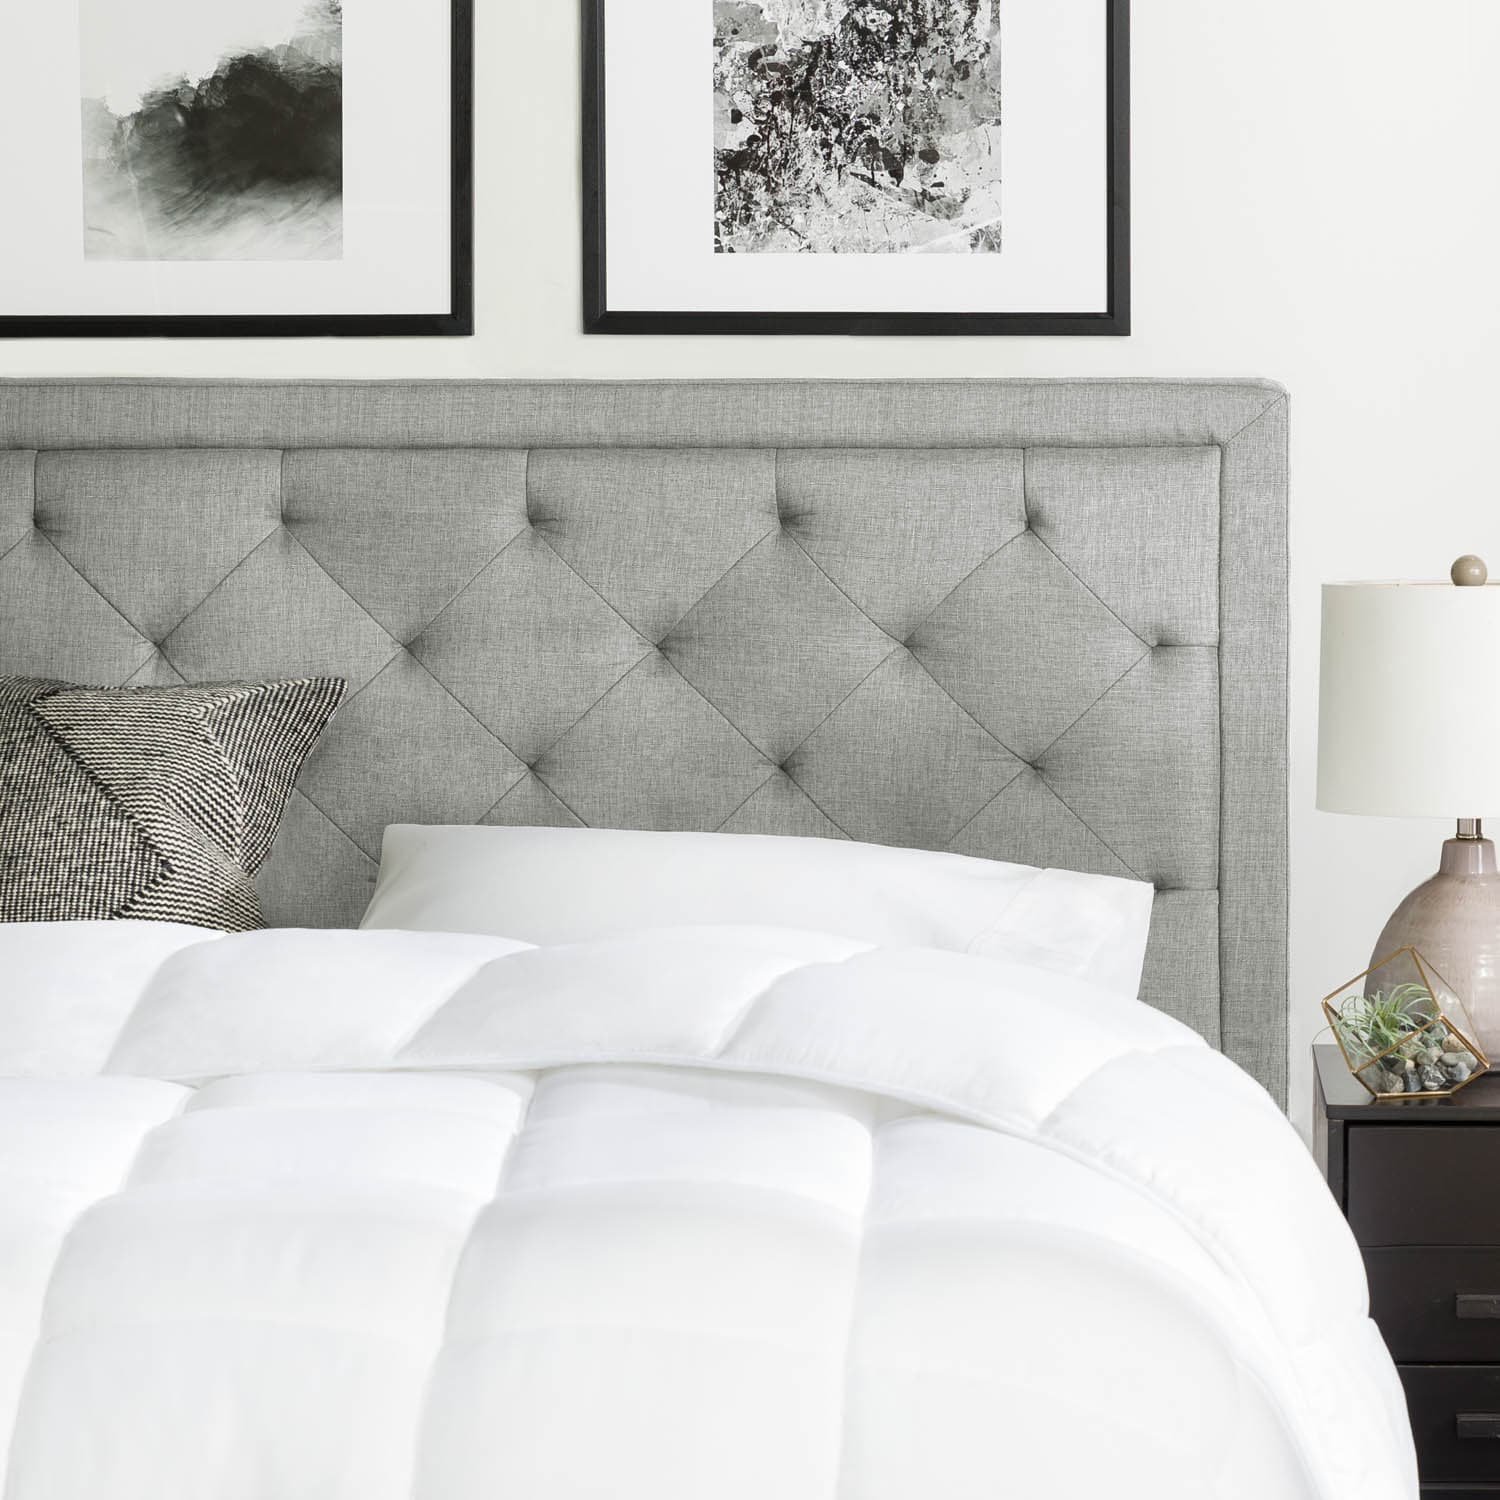 550669e130 Shop BROOKSIDE Upholstered Headboard with Diamond Tufting - Free Shipping  Today - Overstock - 15616719